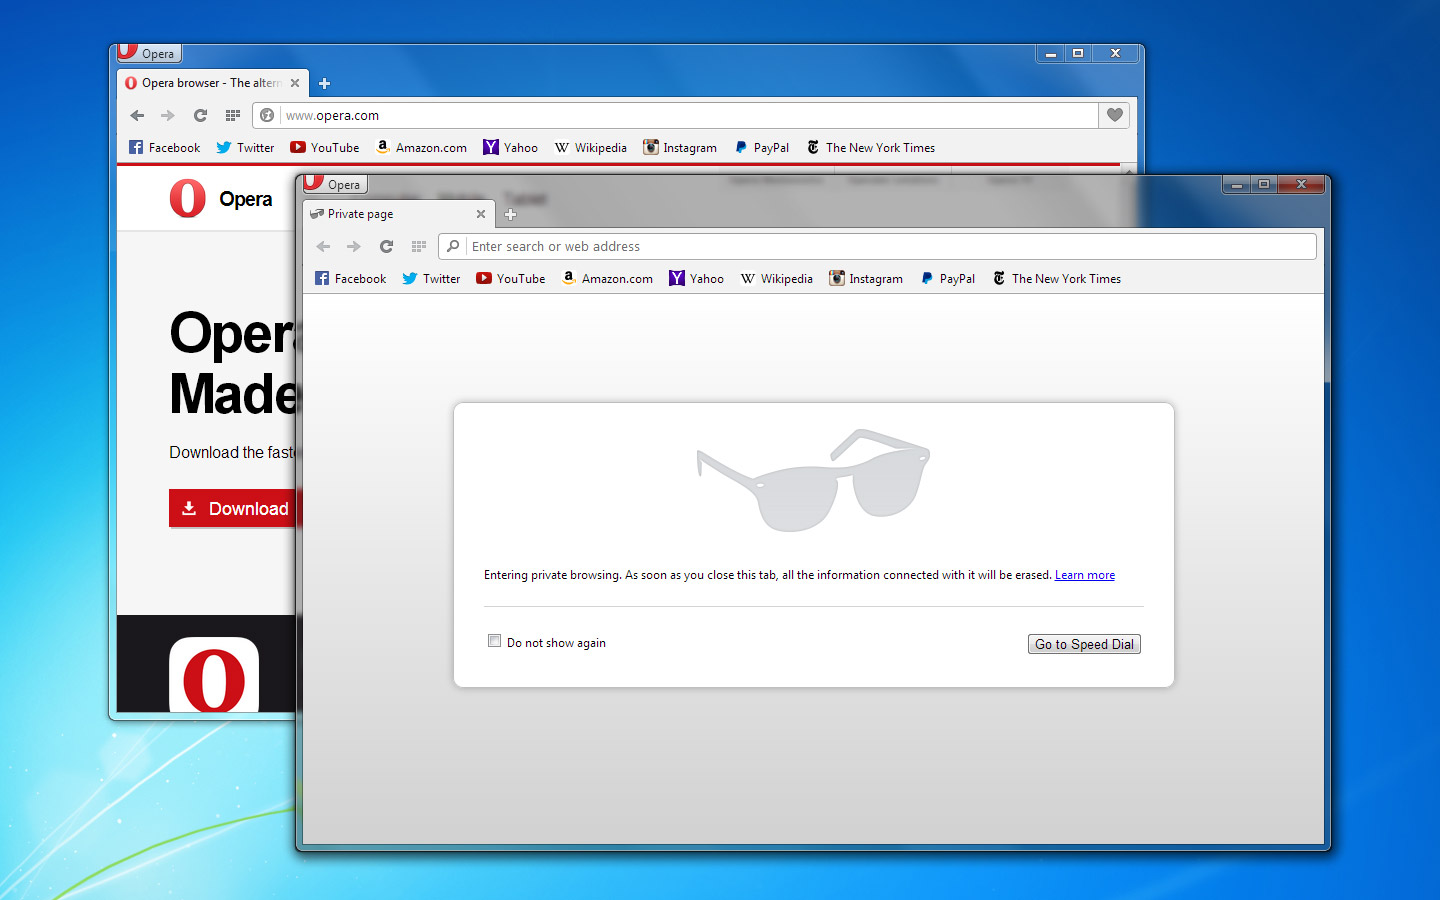 Opera 24 Lands with New Tab Preview Feature